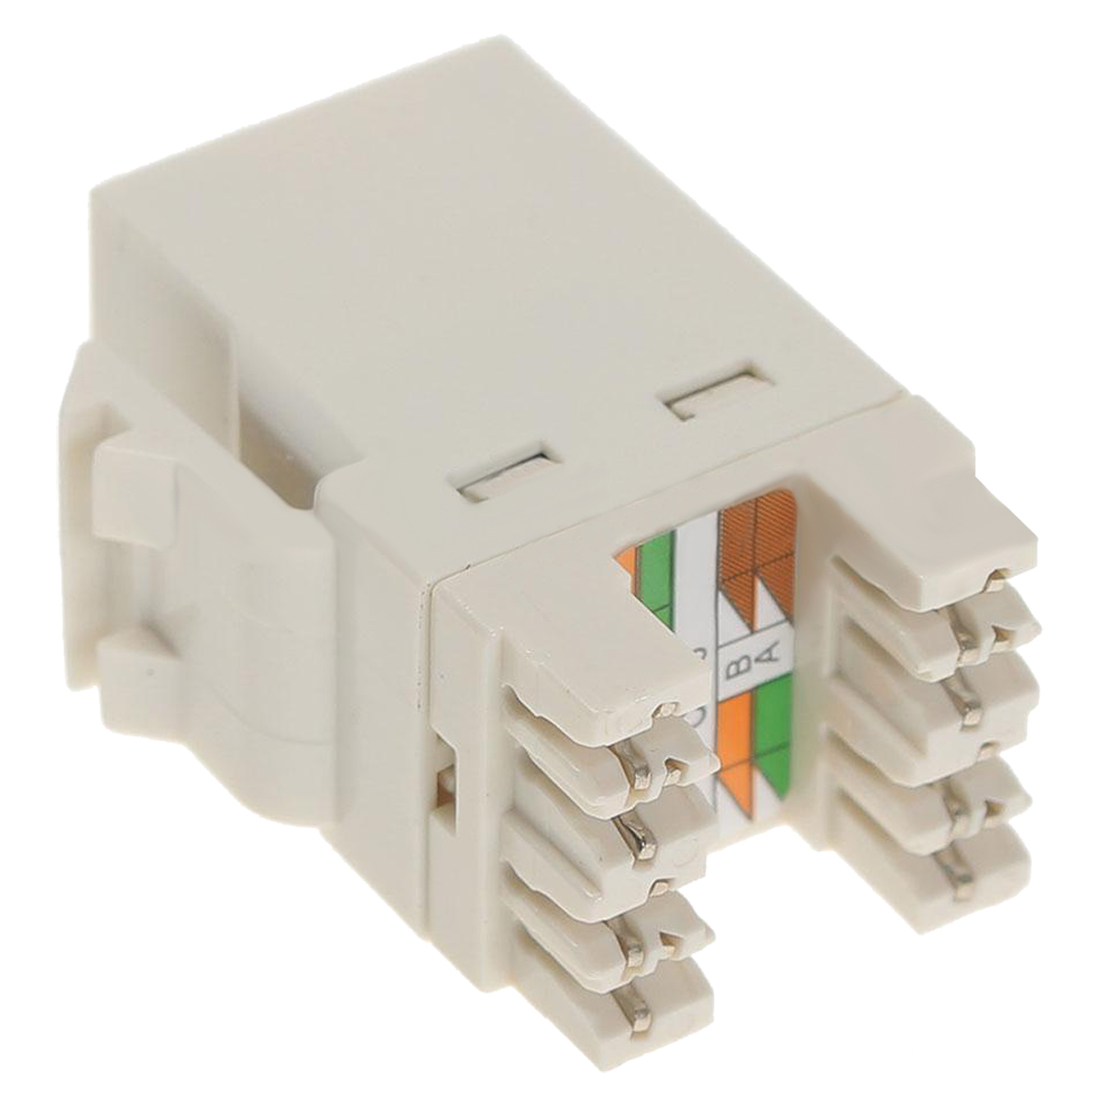 10pcs Cat 6 RJ45 8P8C Punchdown Keystone Modular Ethernet Snap-in Jack Network 24 pcs rj45 modular network pcb jack 56 8p w led 4 ports